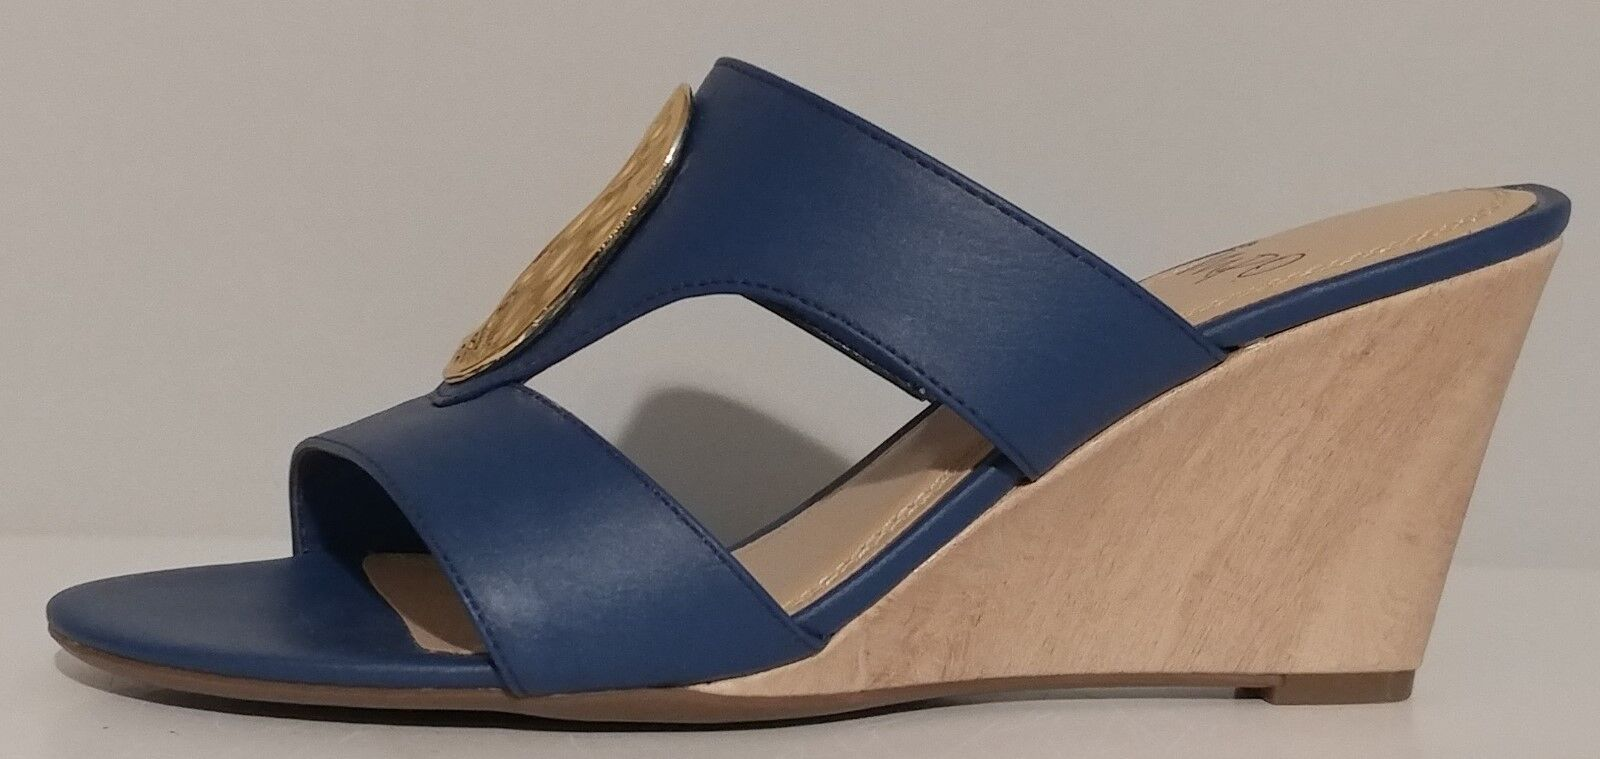 NEW   Womens IMPO Valmira bluee Wedge Sandals 3  Heels Size 8M US 38M EUR